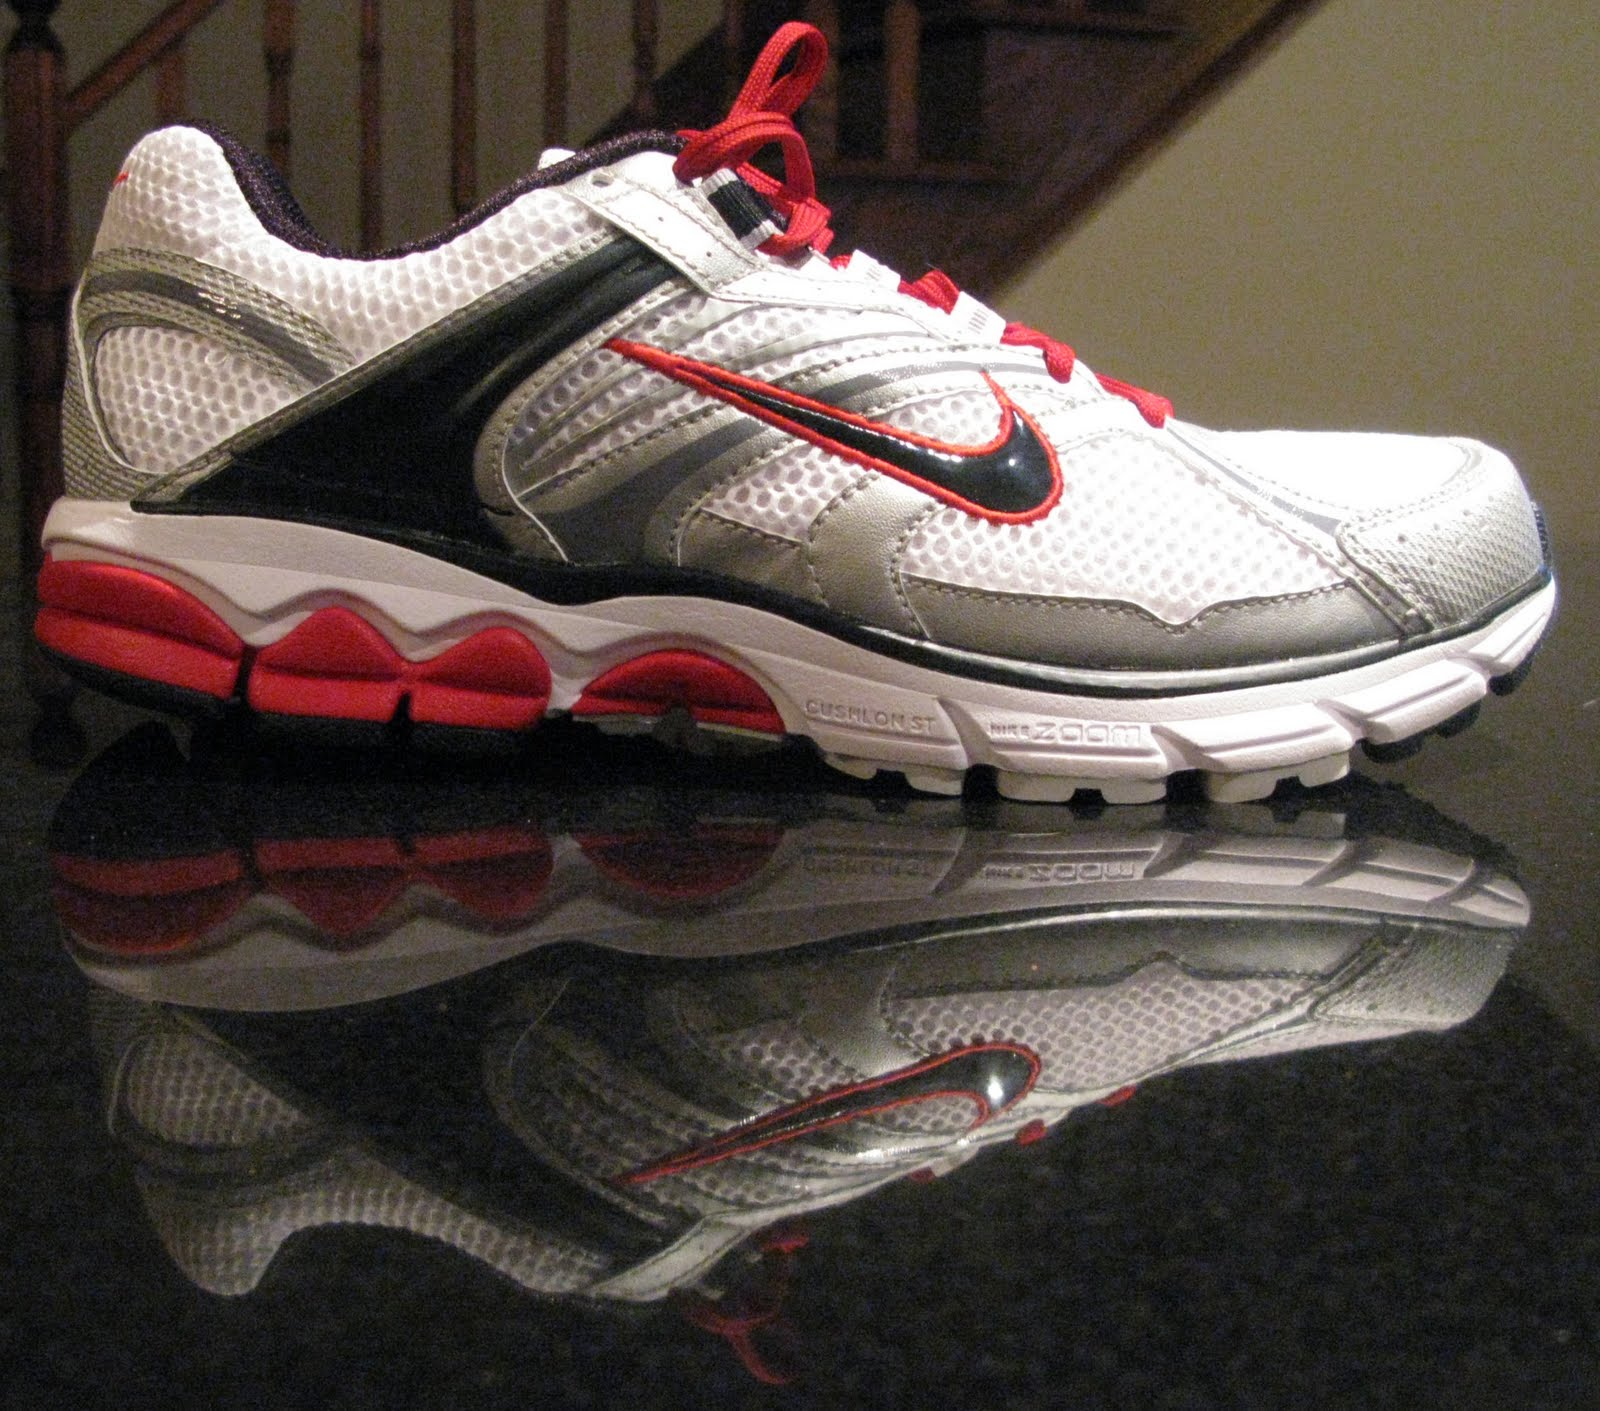 the foam shoes nike equalon 4